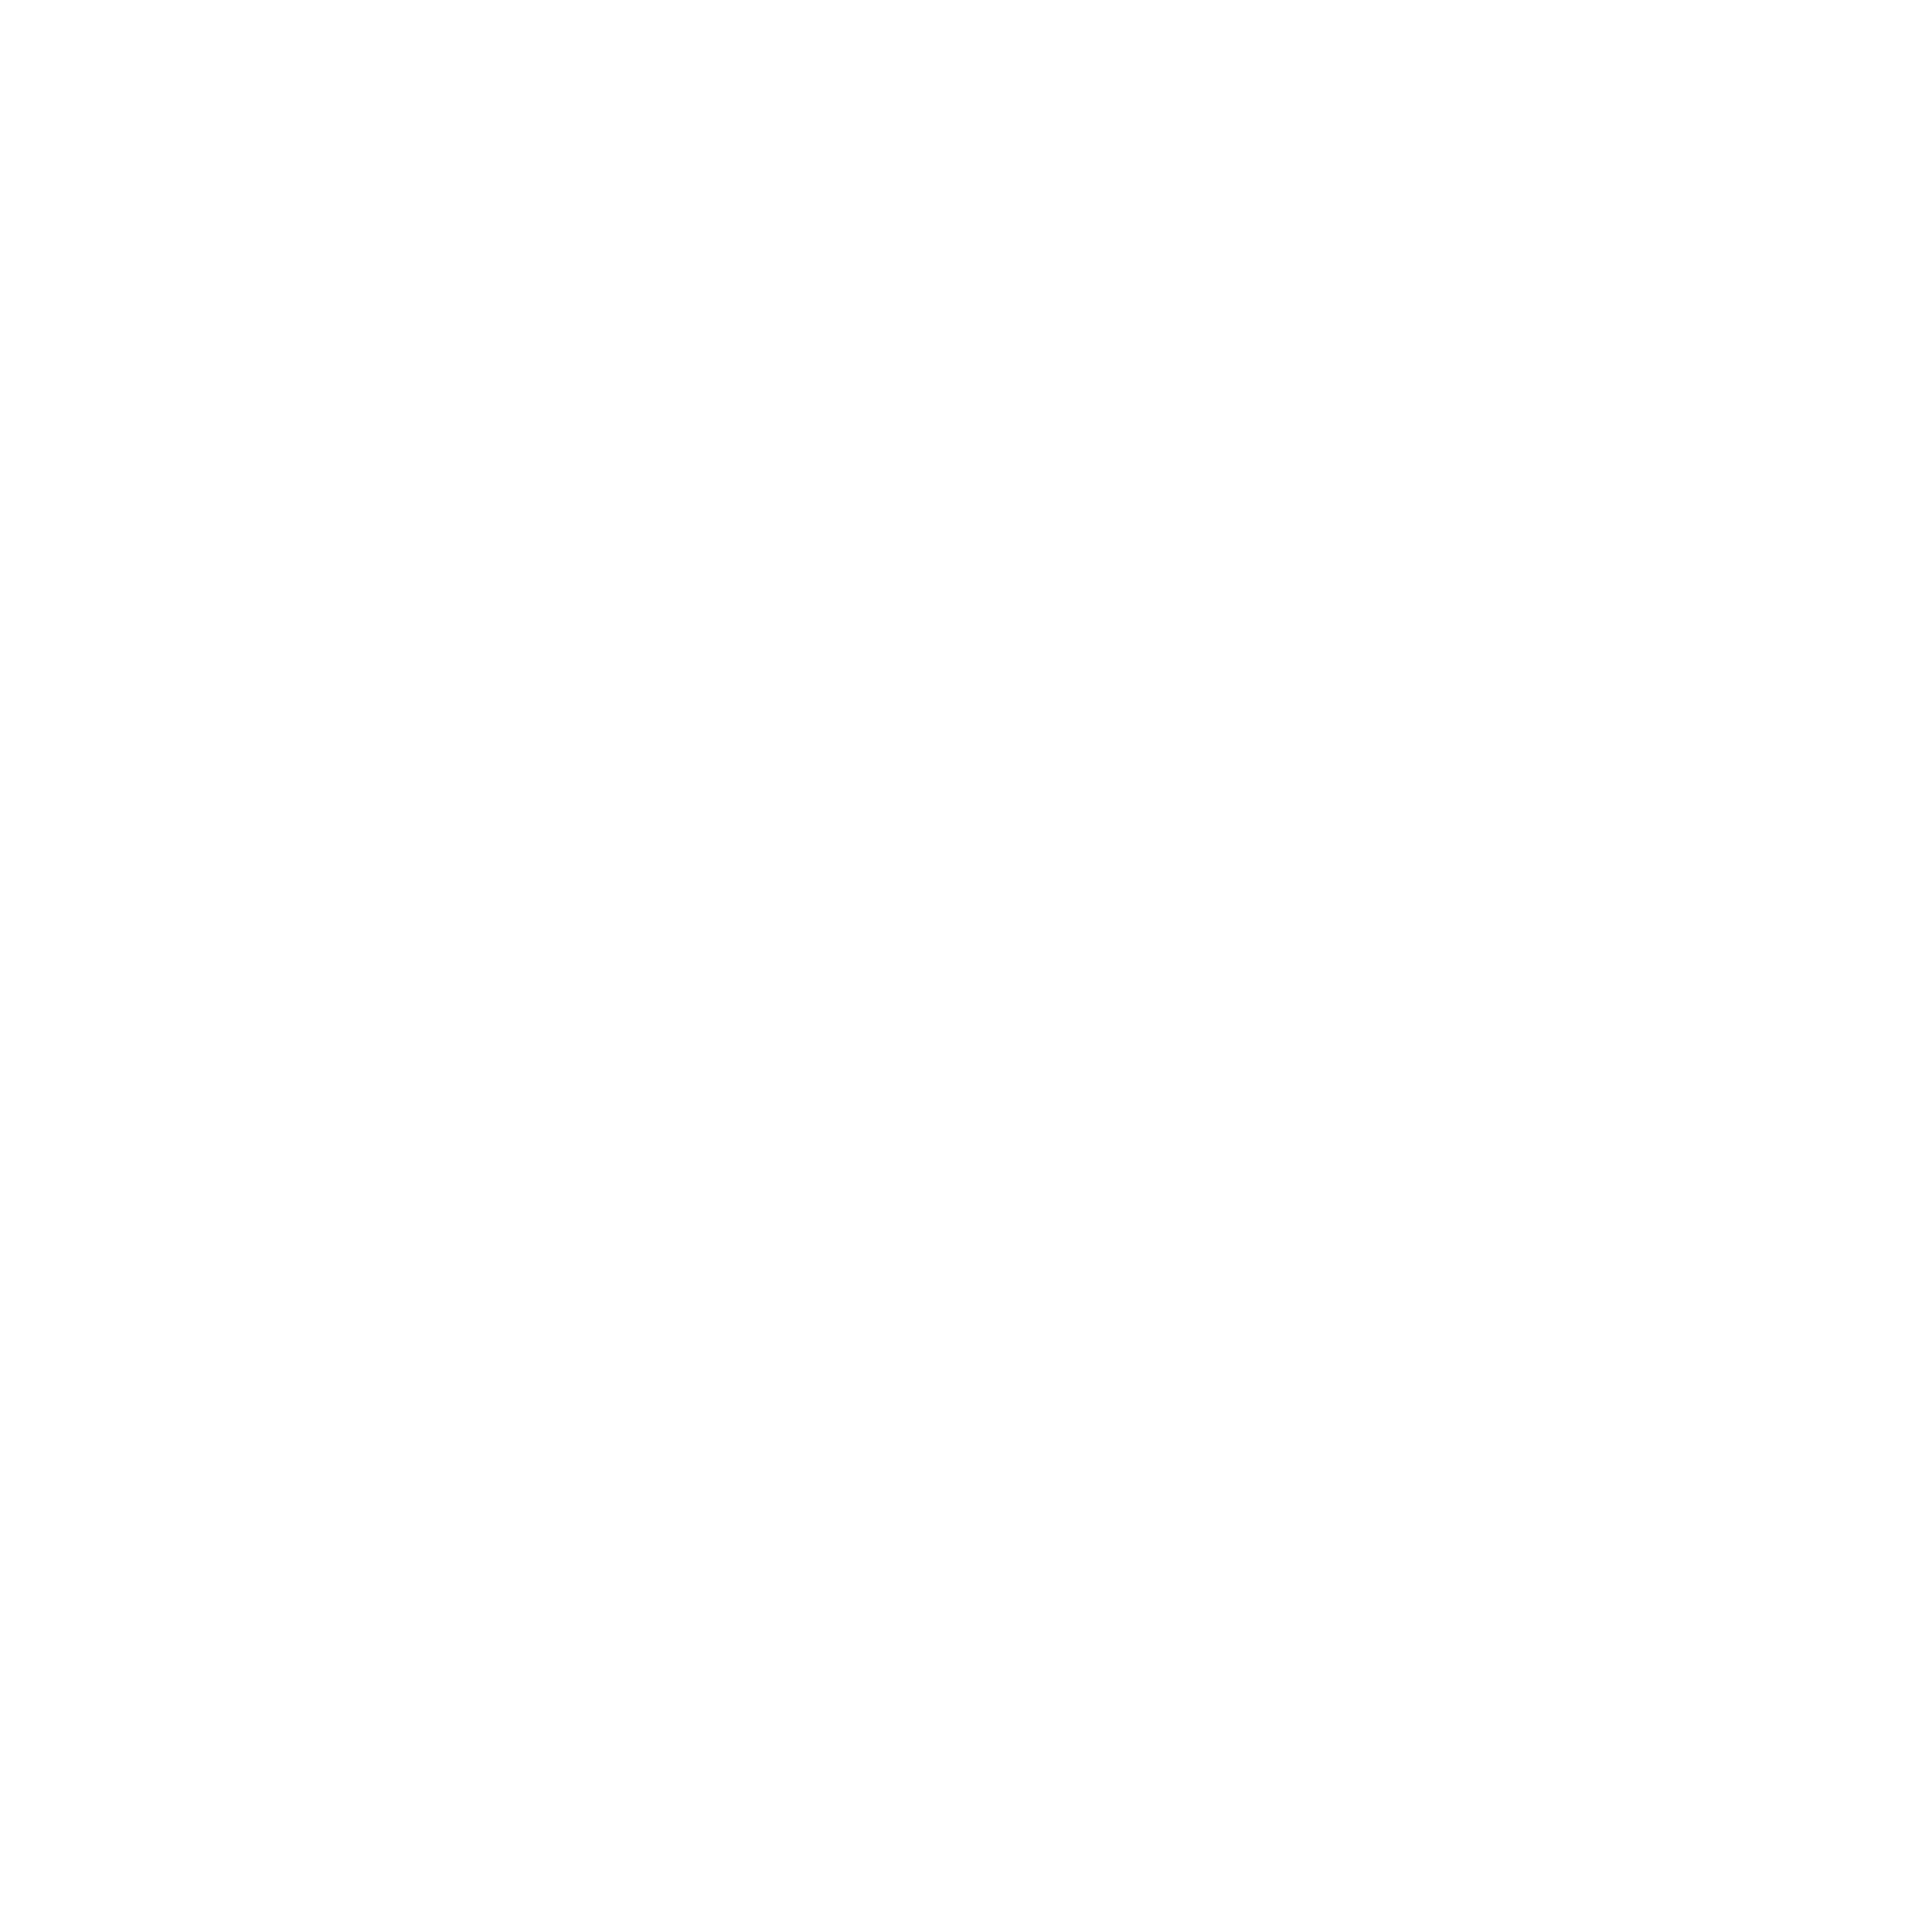 2019 Discount Miscanthus Planting